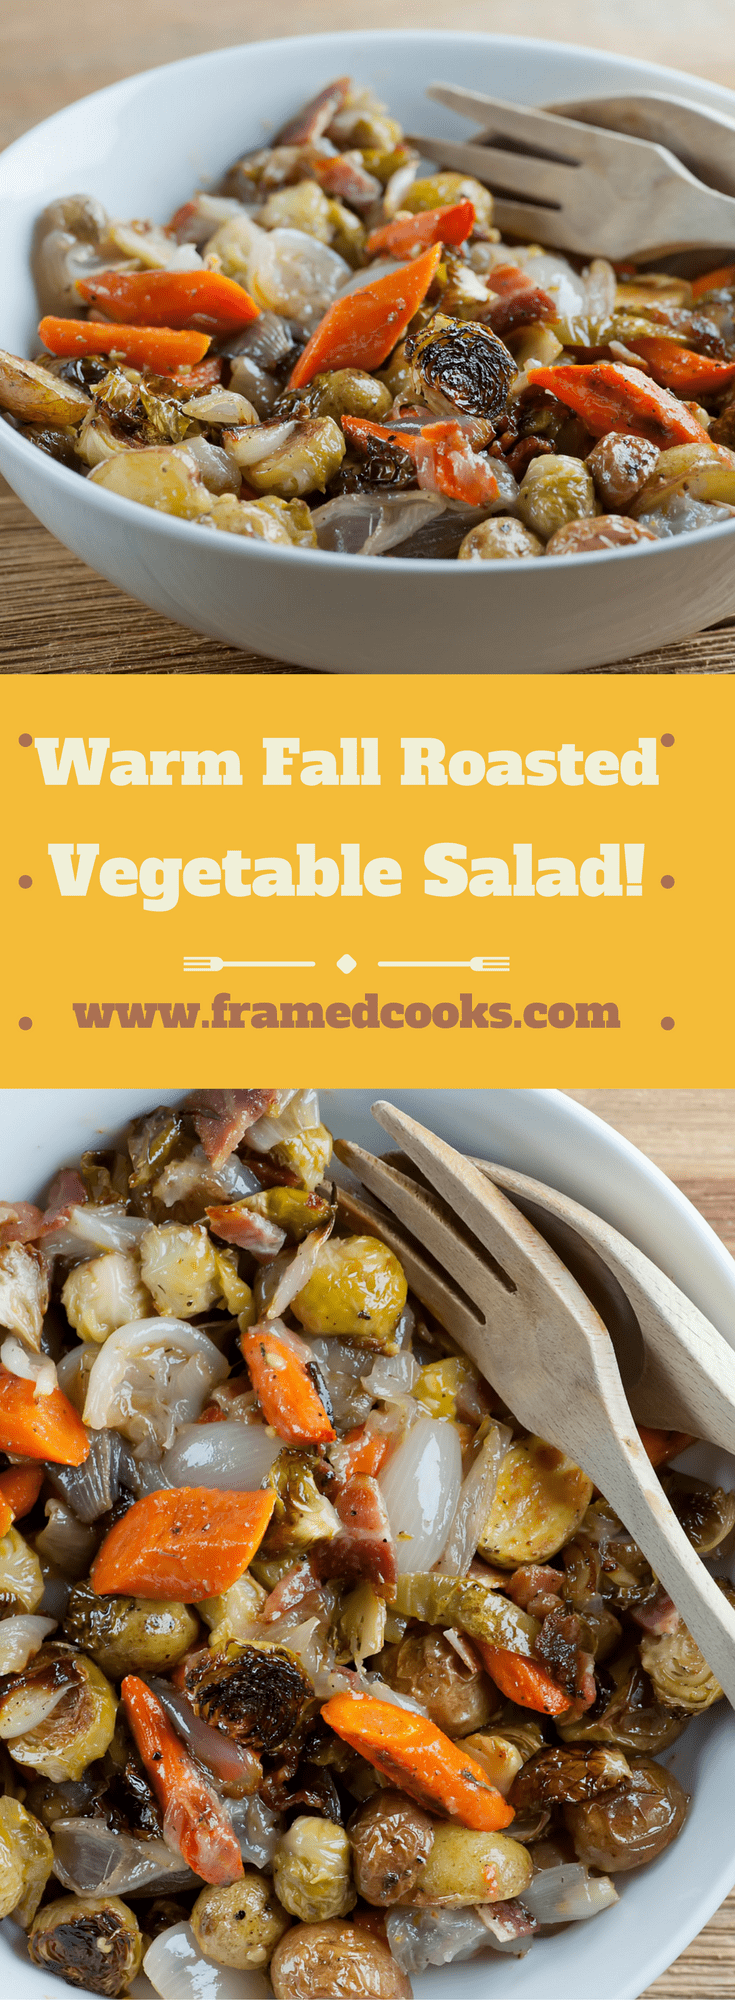 This simple recipe for warm roasted fall vegetable salad has all the flavors and colors of autumn, tossed with a little bacon!